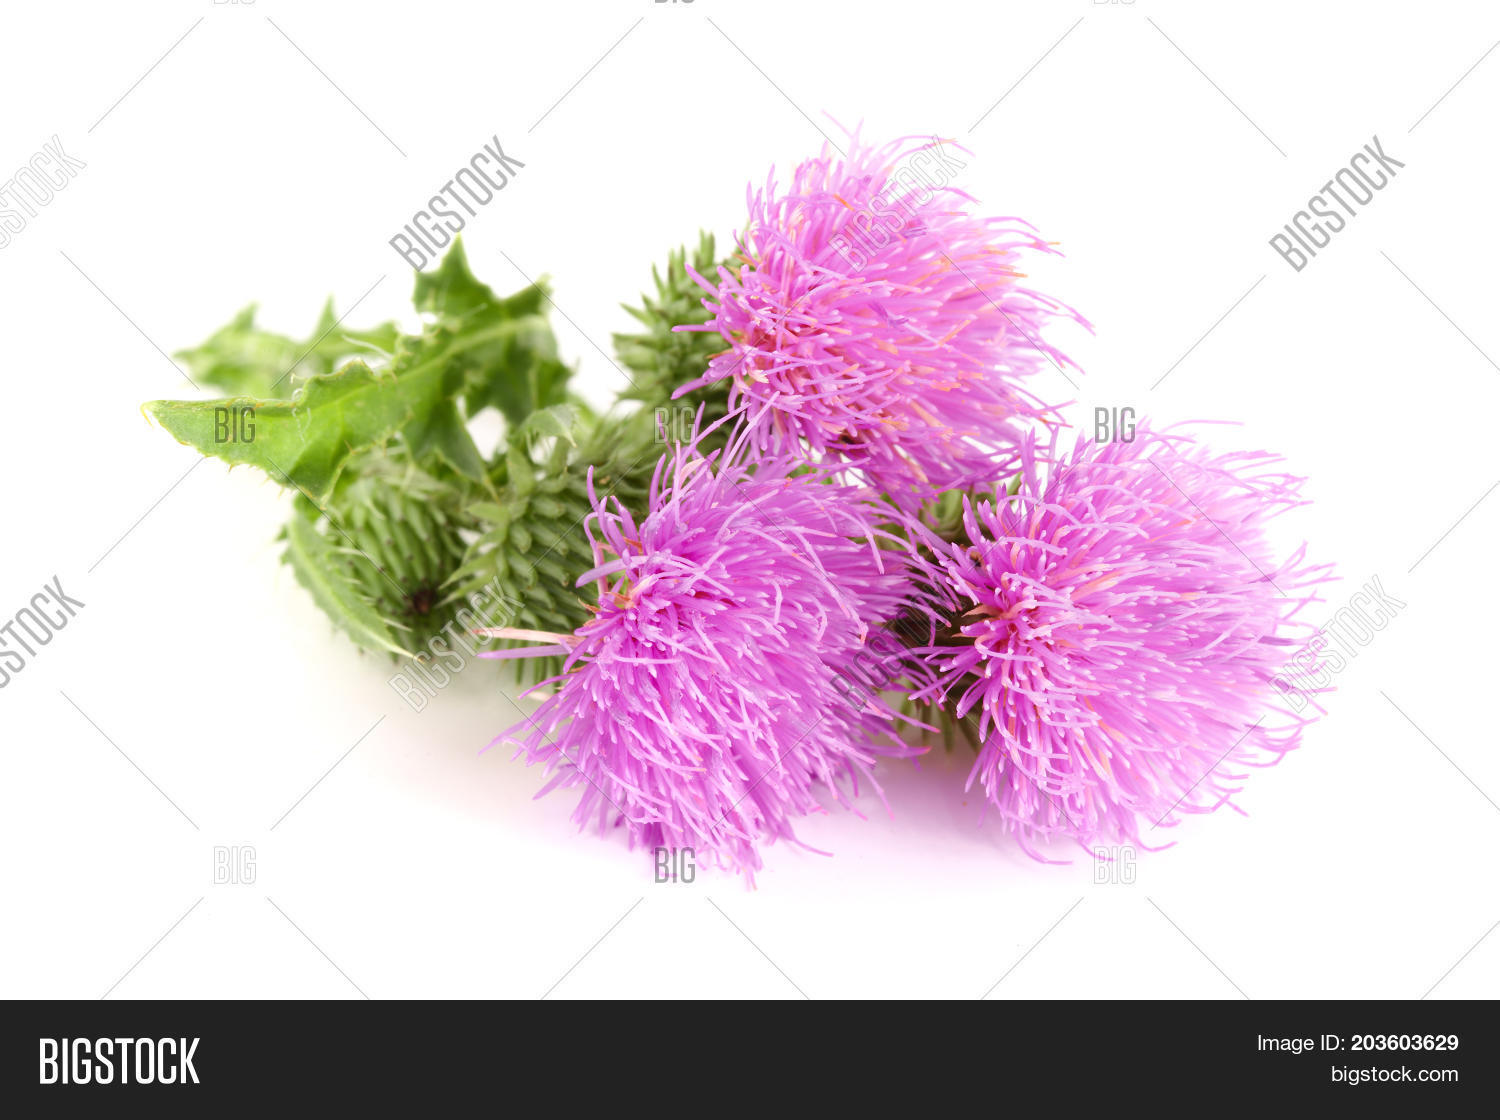 Flower Thistle Image Photo Free Trial Bigstock